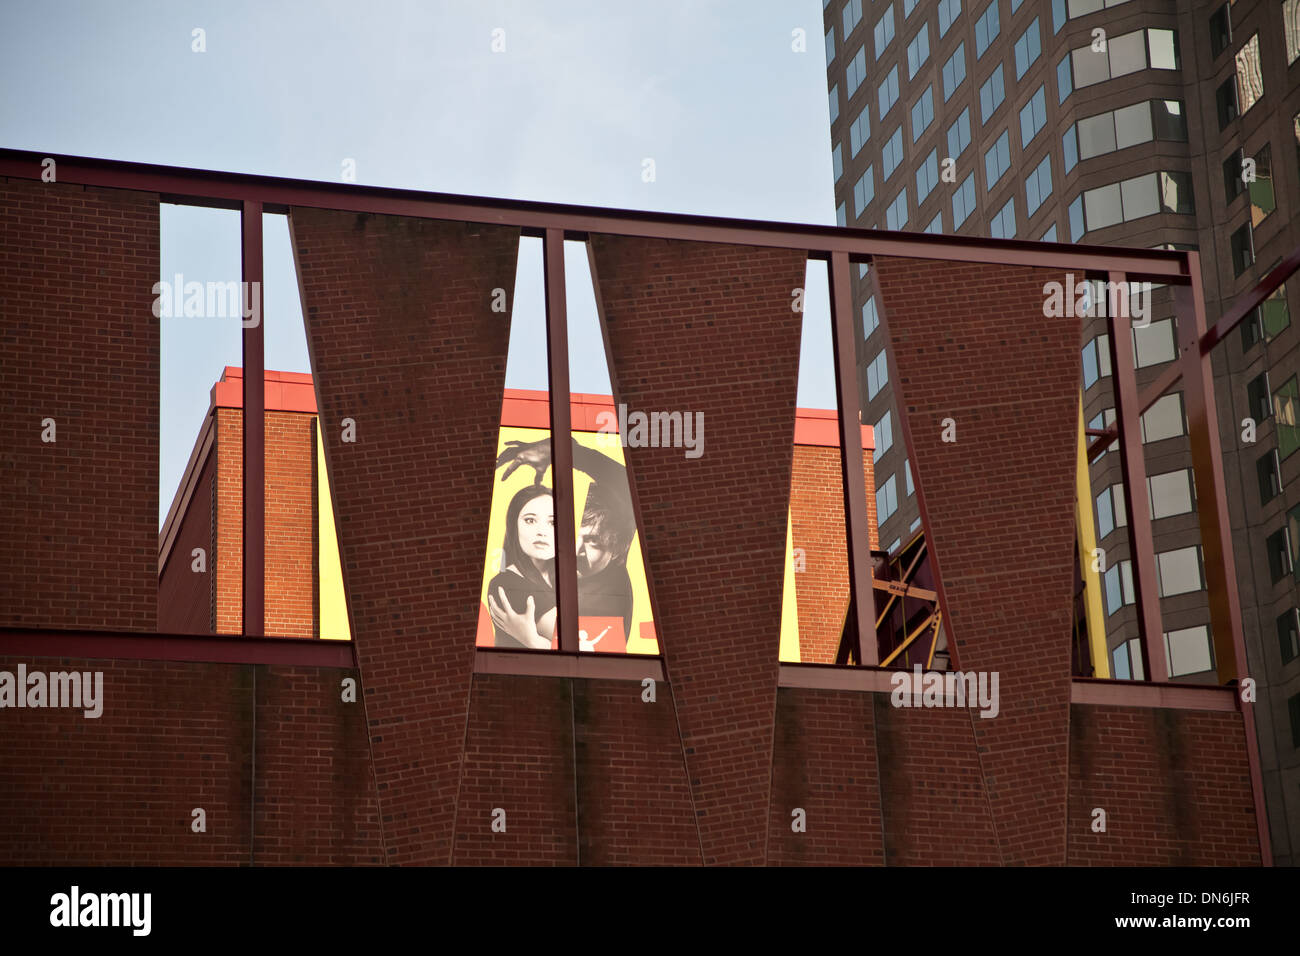 Architecture and wall art, Montreal, Canada. - Stock Image